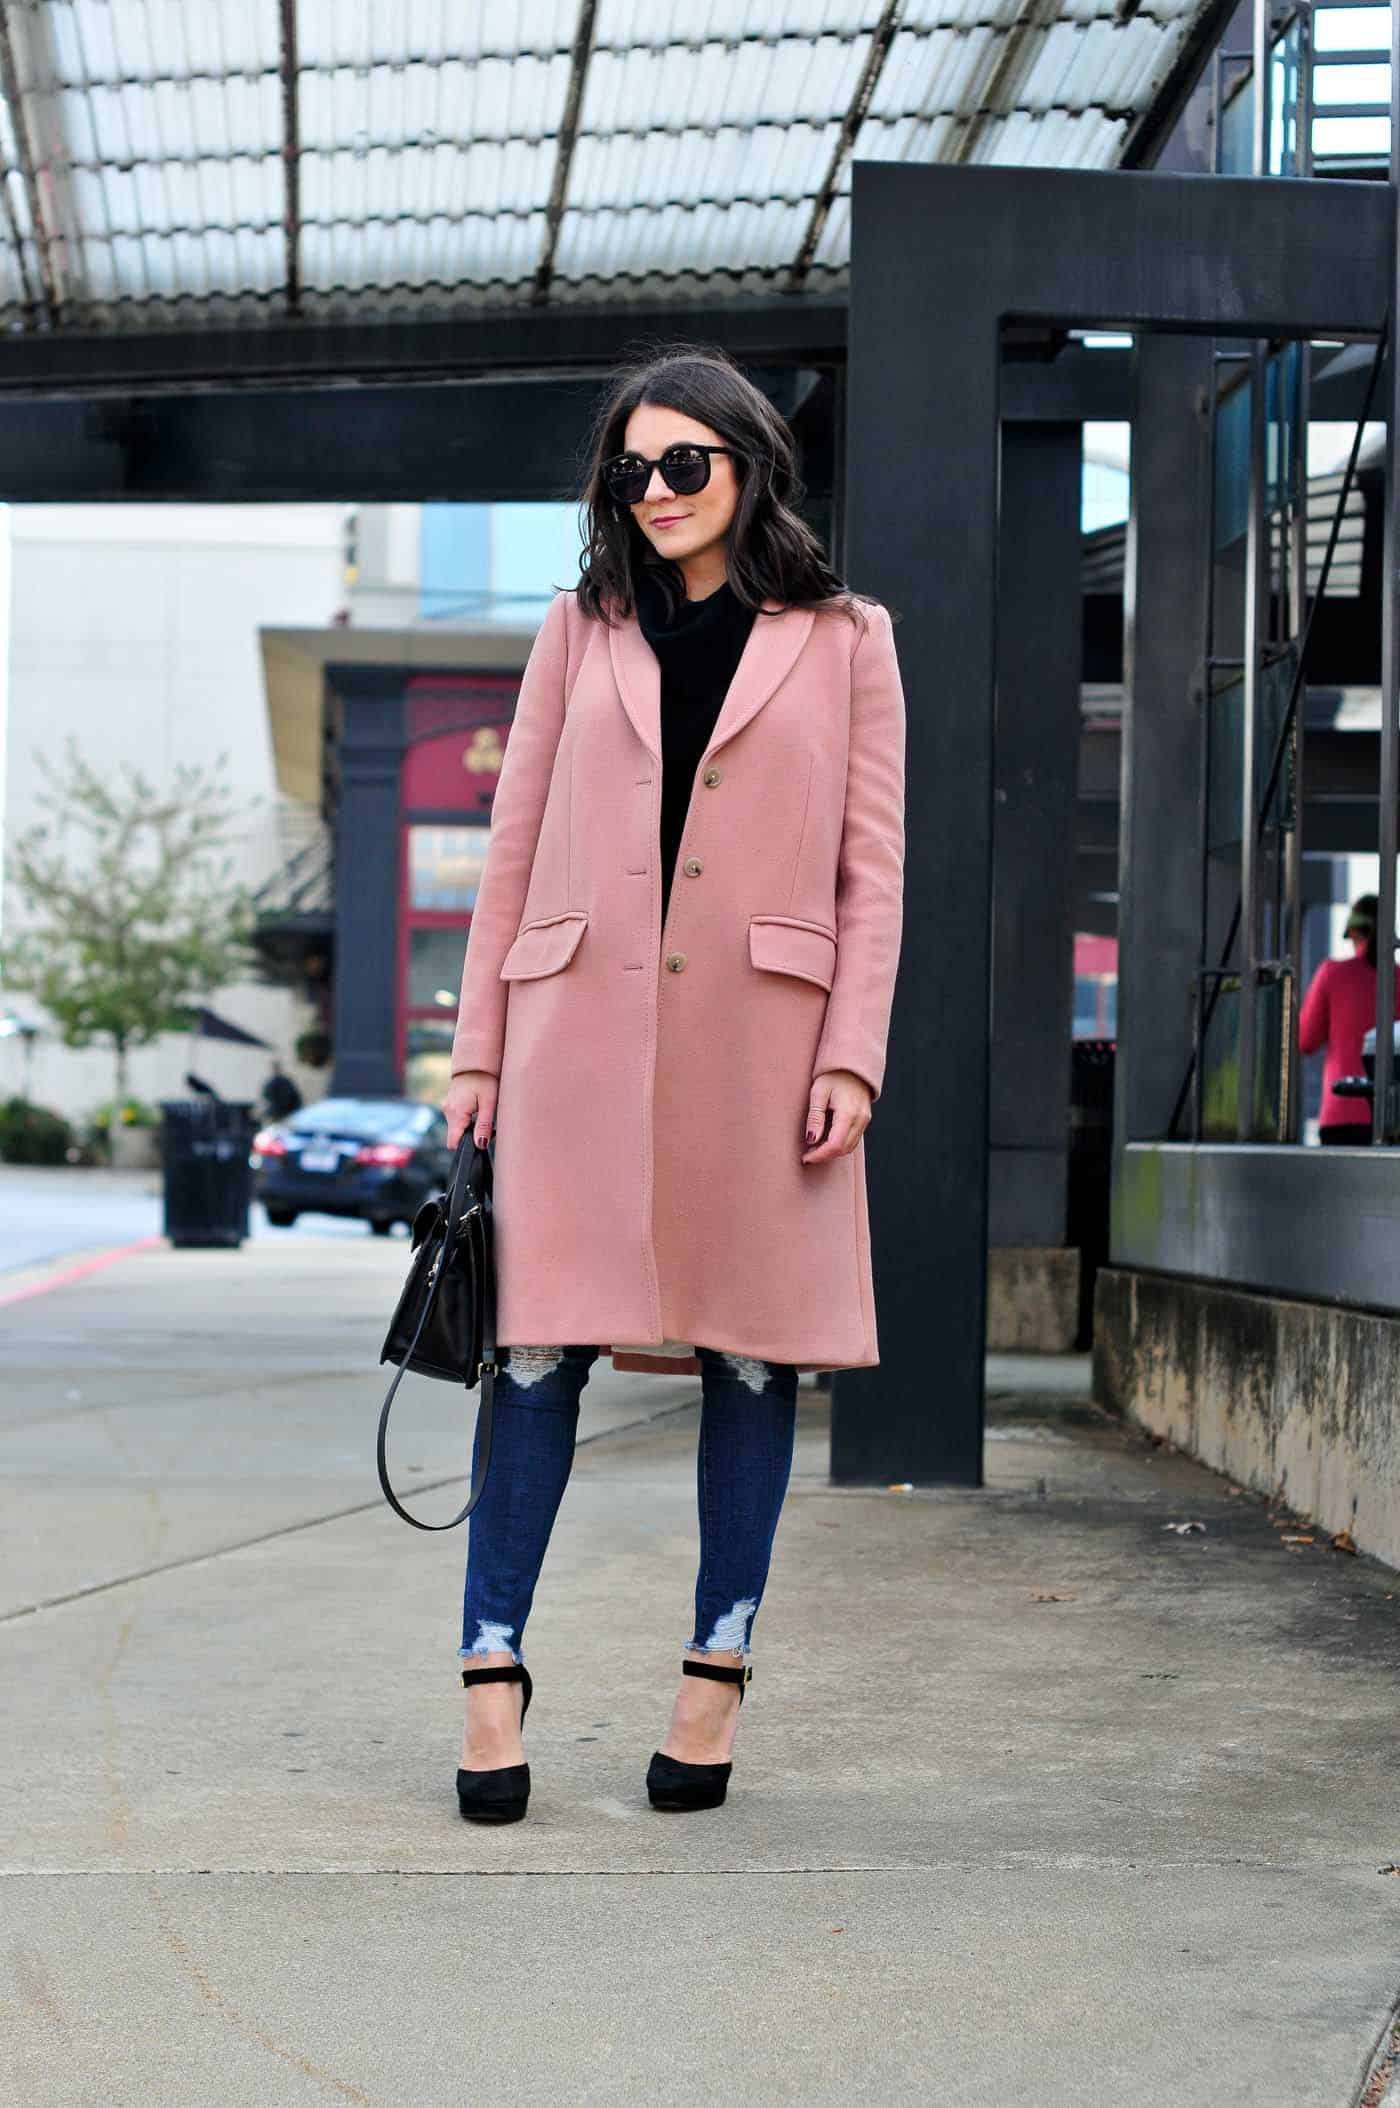 how to style a pink coat, pink winter coat ideas - My Style Vita @mystylevita